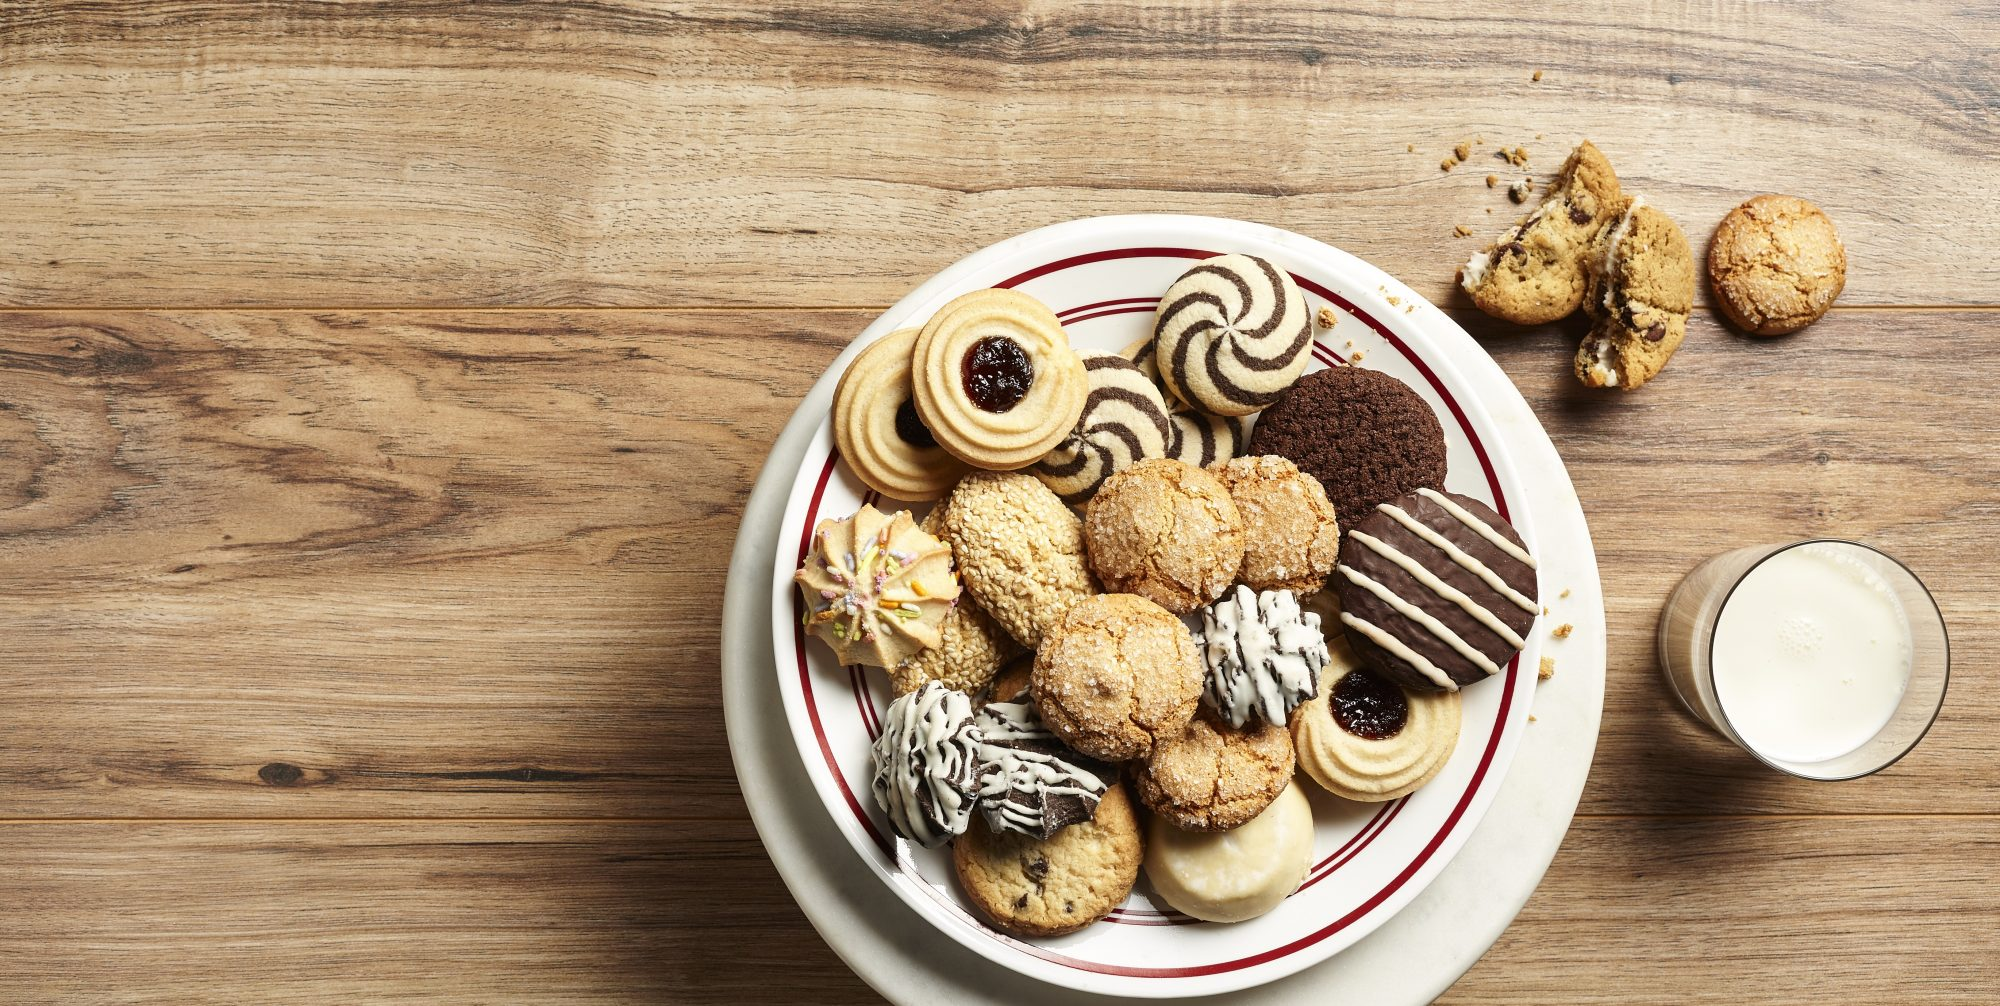 Whole Foods Is Giving You 50% Off for 4 Days to Celebrate National Cookie Day